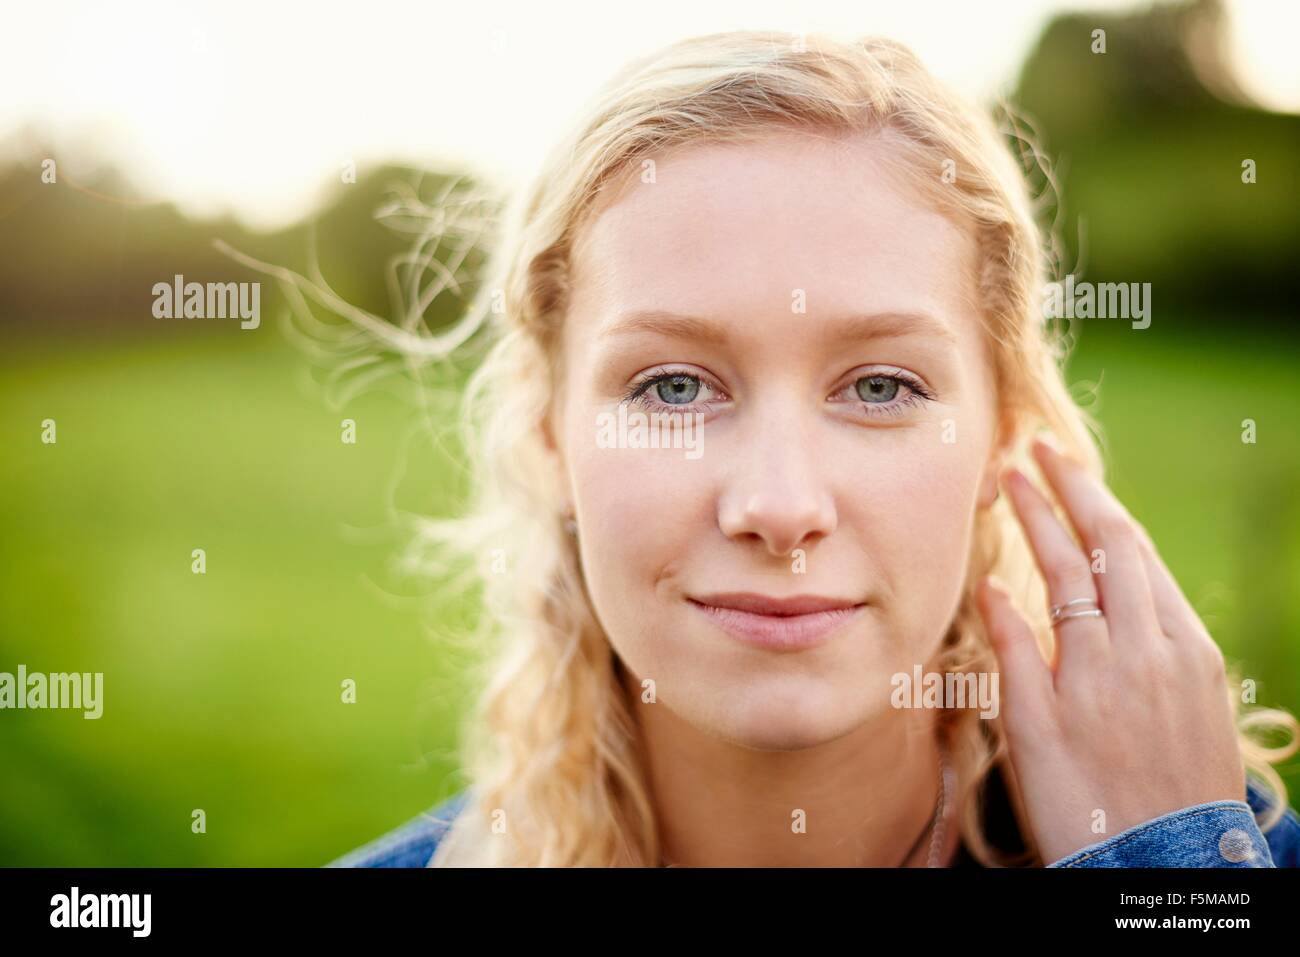 Close up portrait of young woman with blond hair - Stock Image